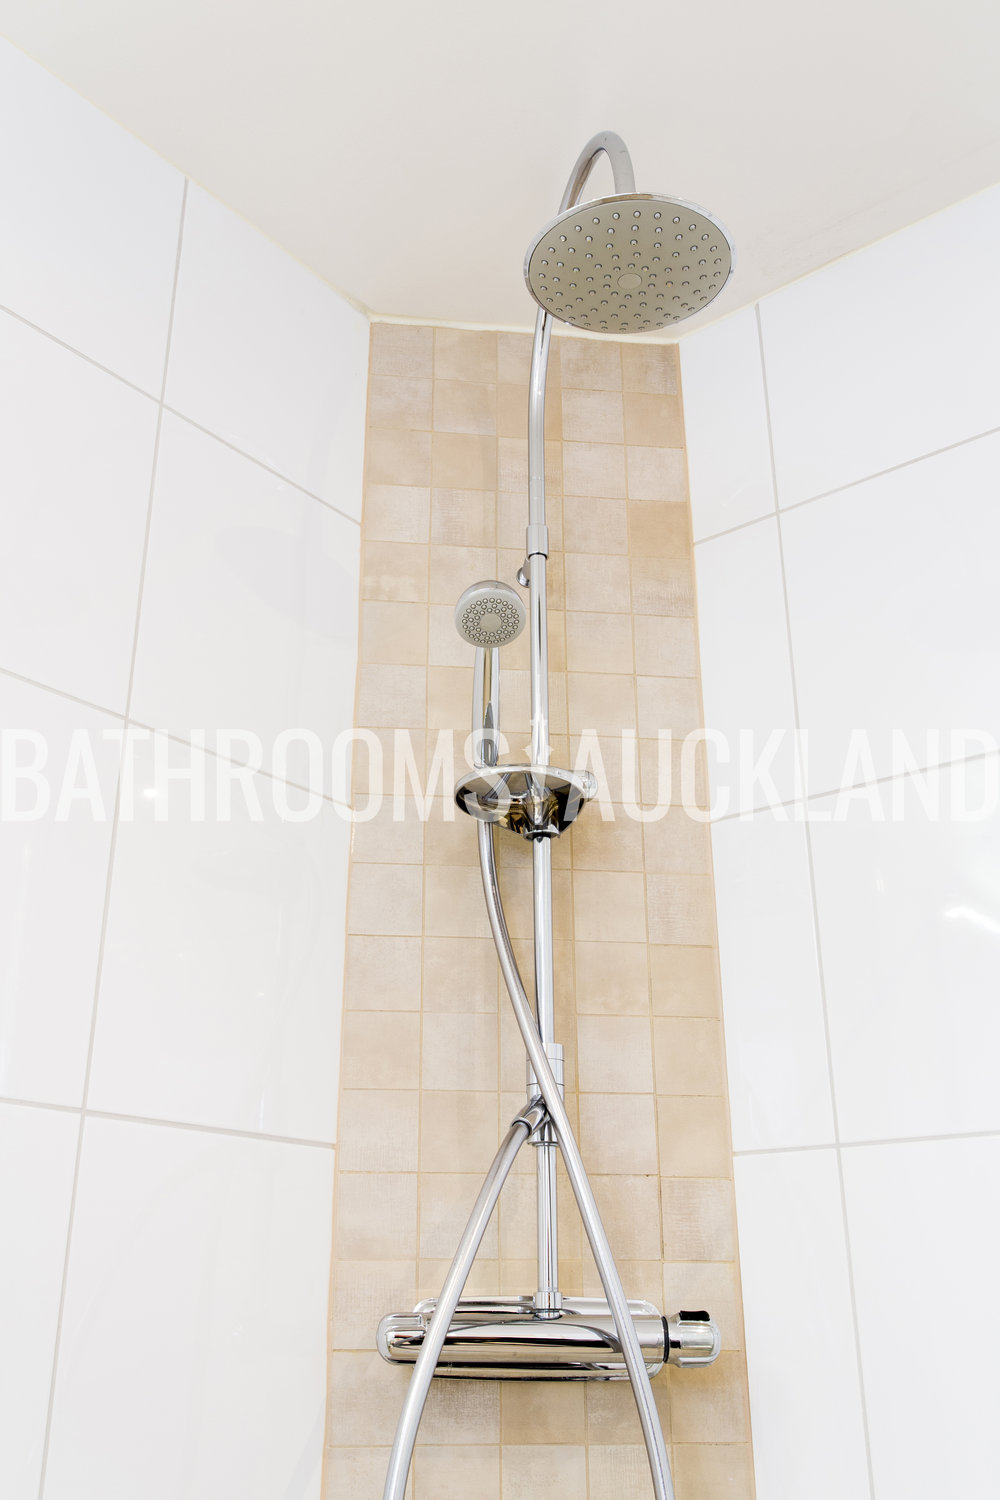 Bathrooms Auckland Renovation_Bathrooms In Auckland_Bathroom Renovation_Bathrooms Renovation_Bathrooms Auckland Renovation .1219.jpg